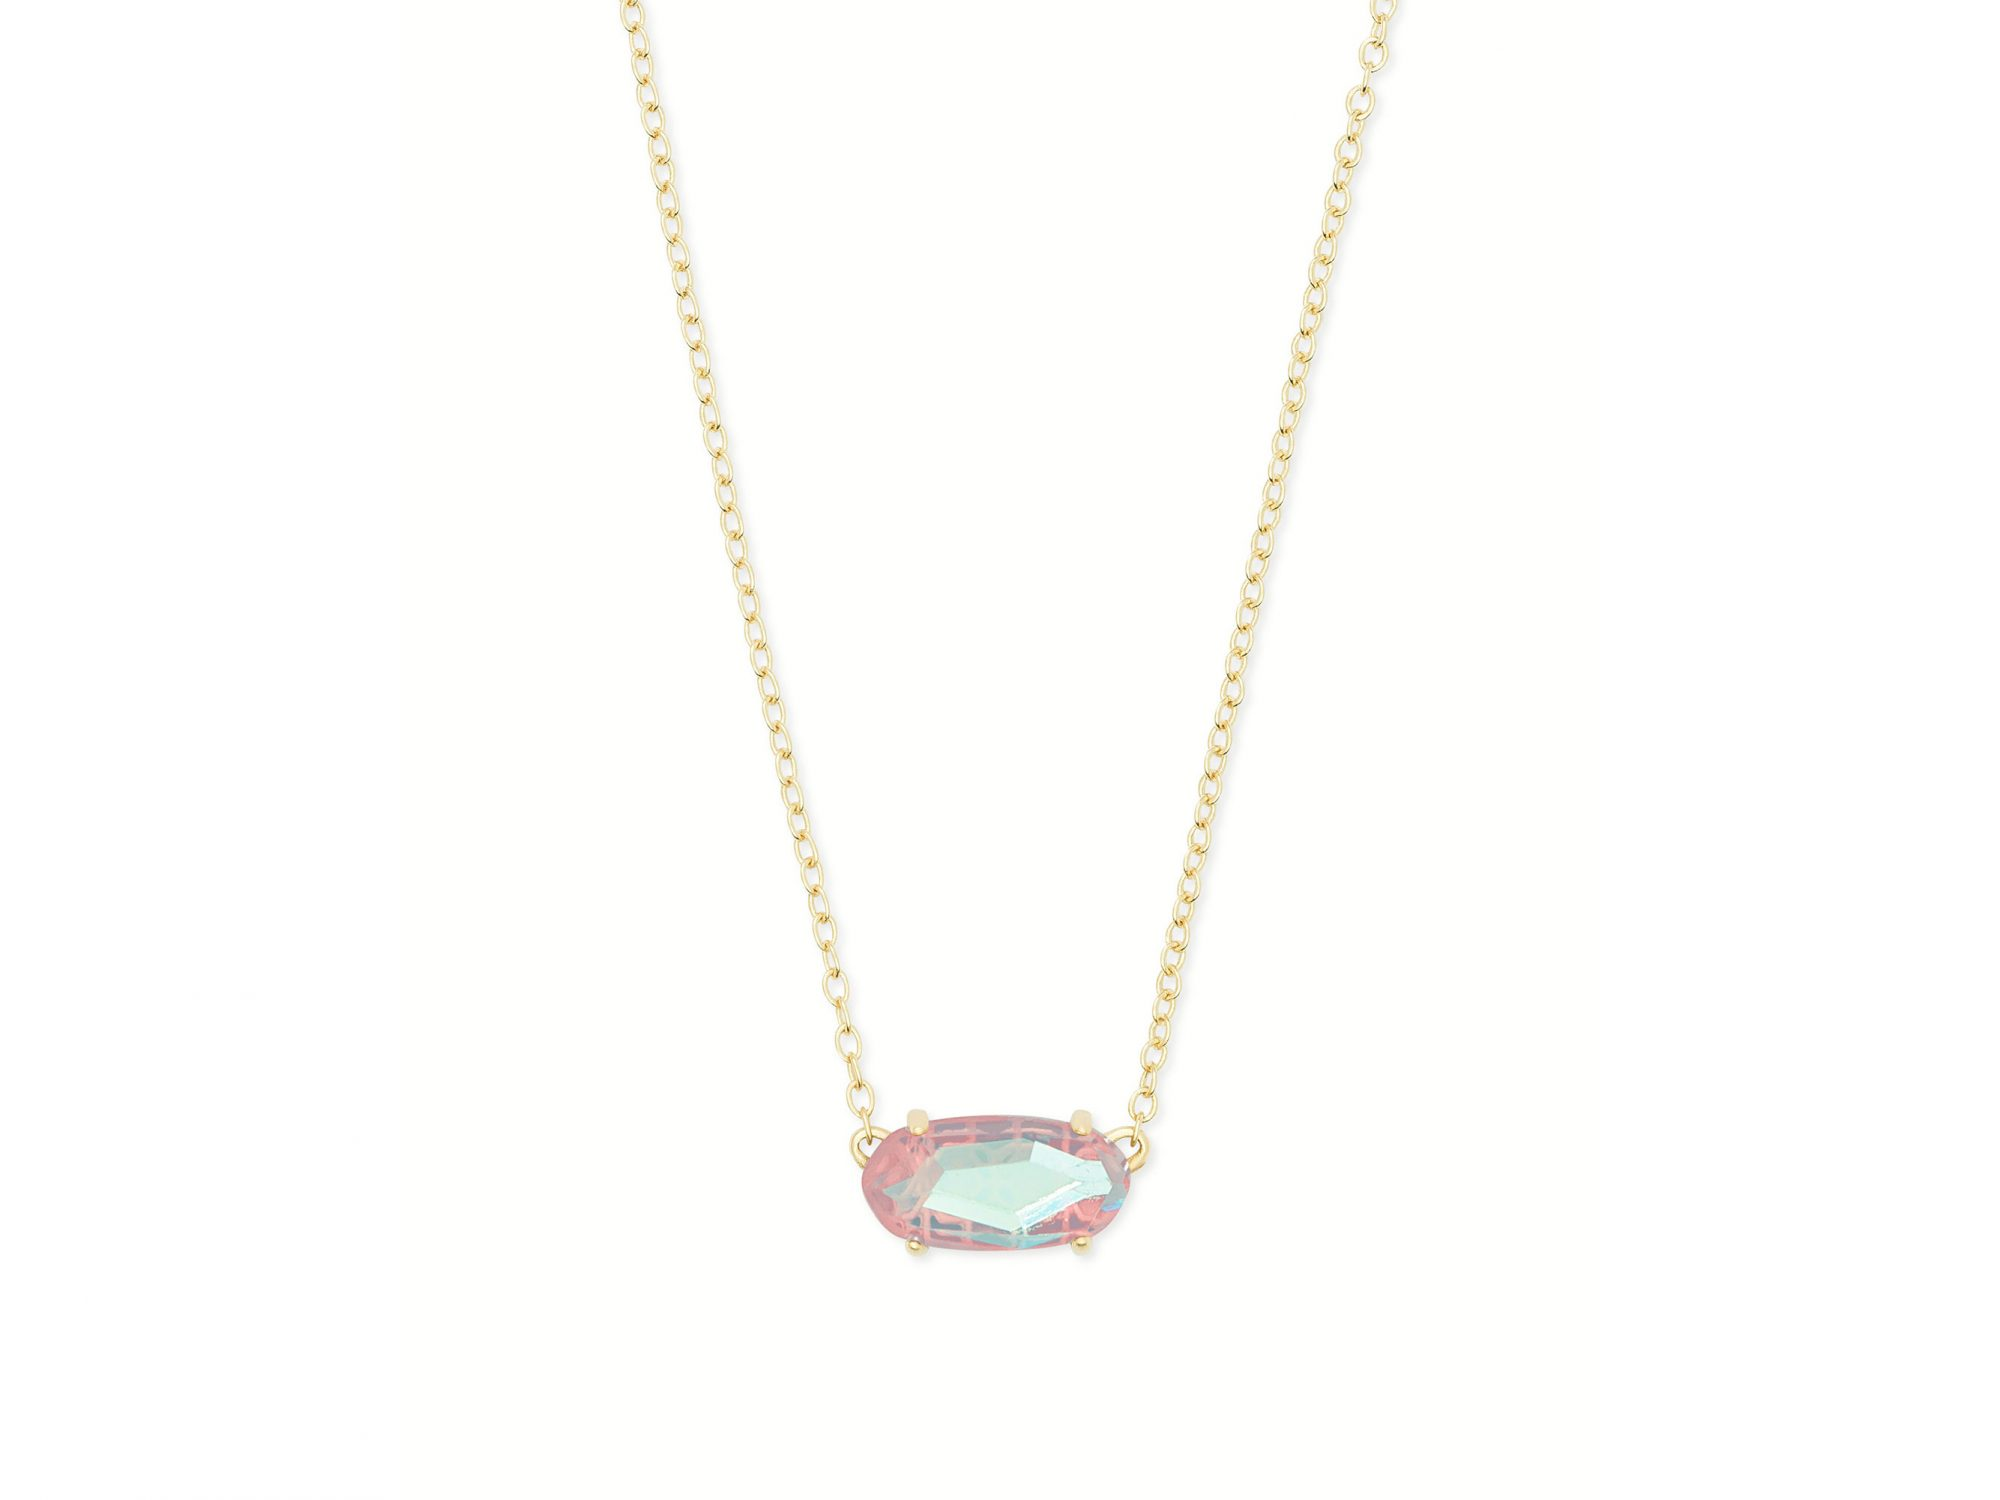 Kendra Scott Elisa Silver Pendant Necklace In Light Pink Drusy